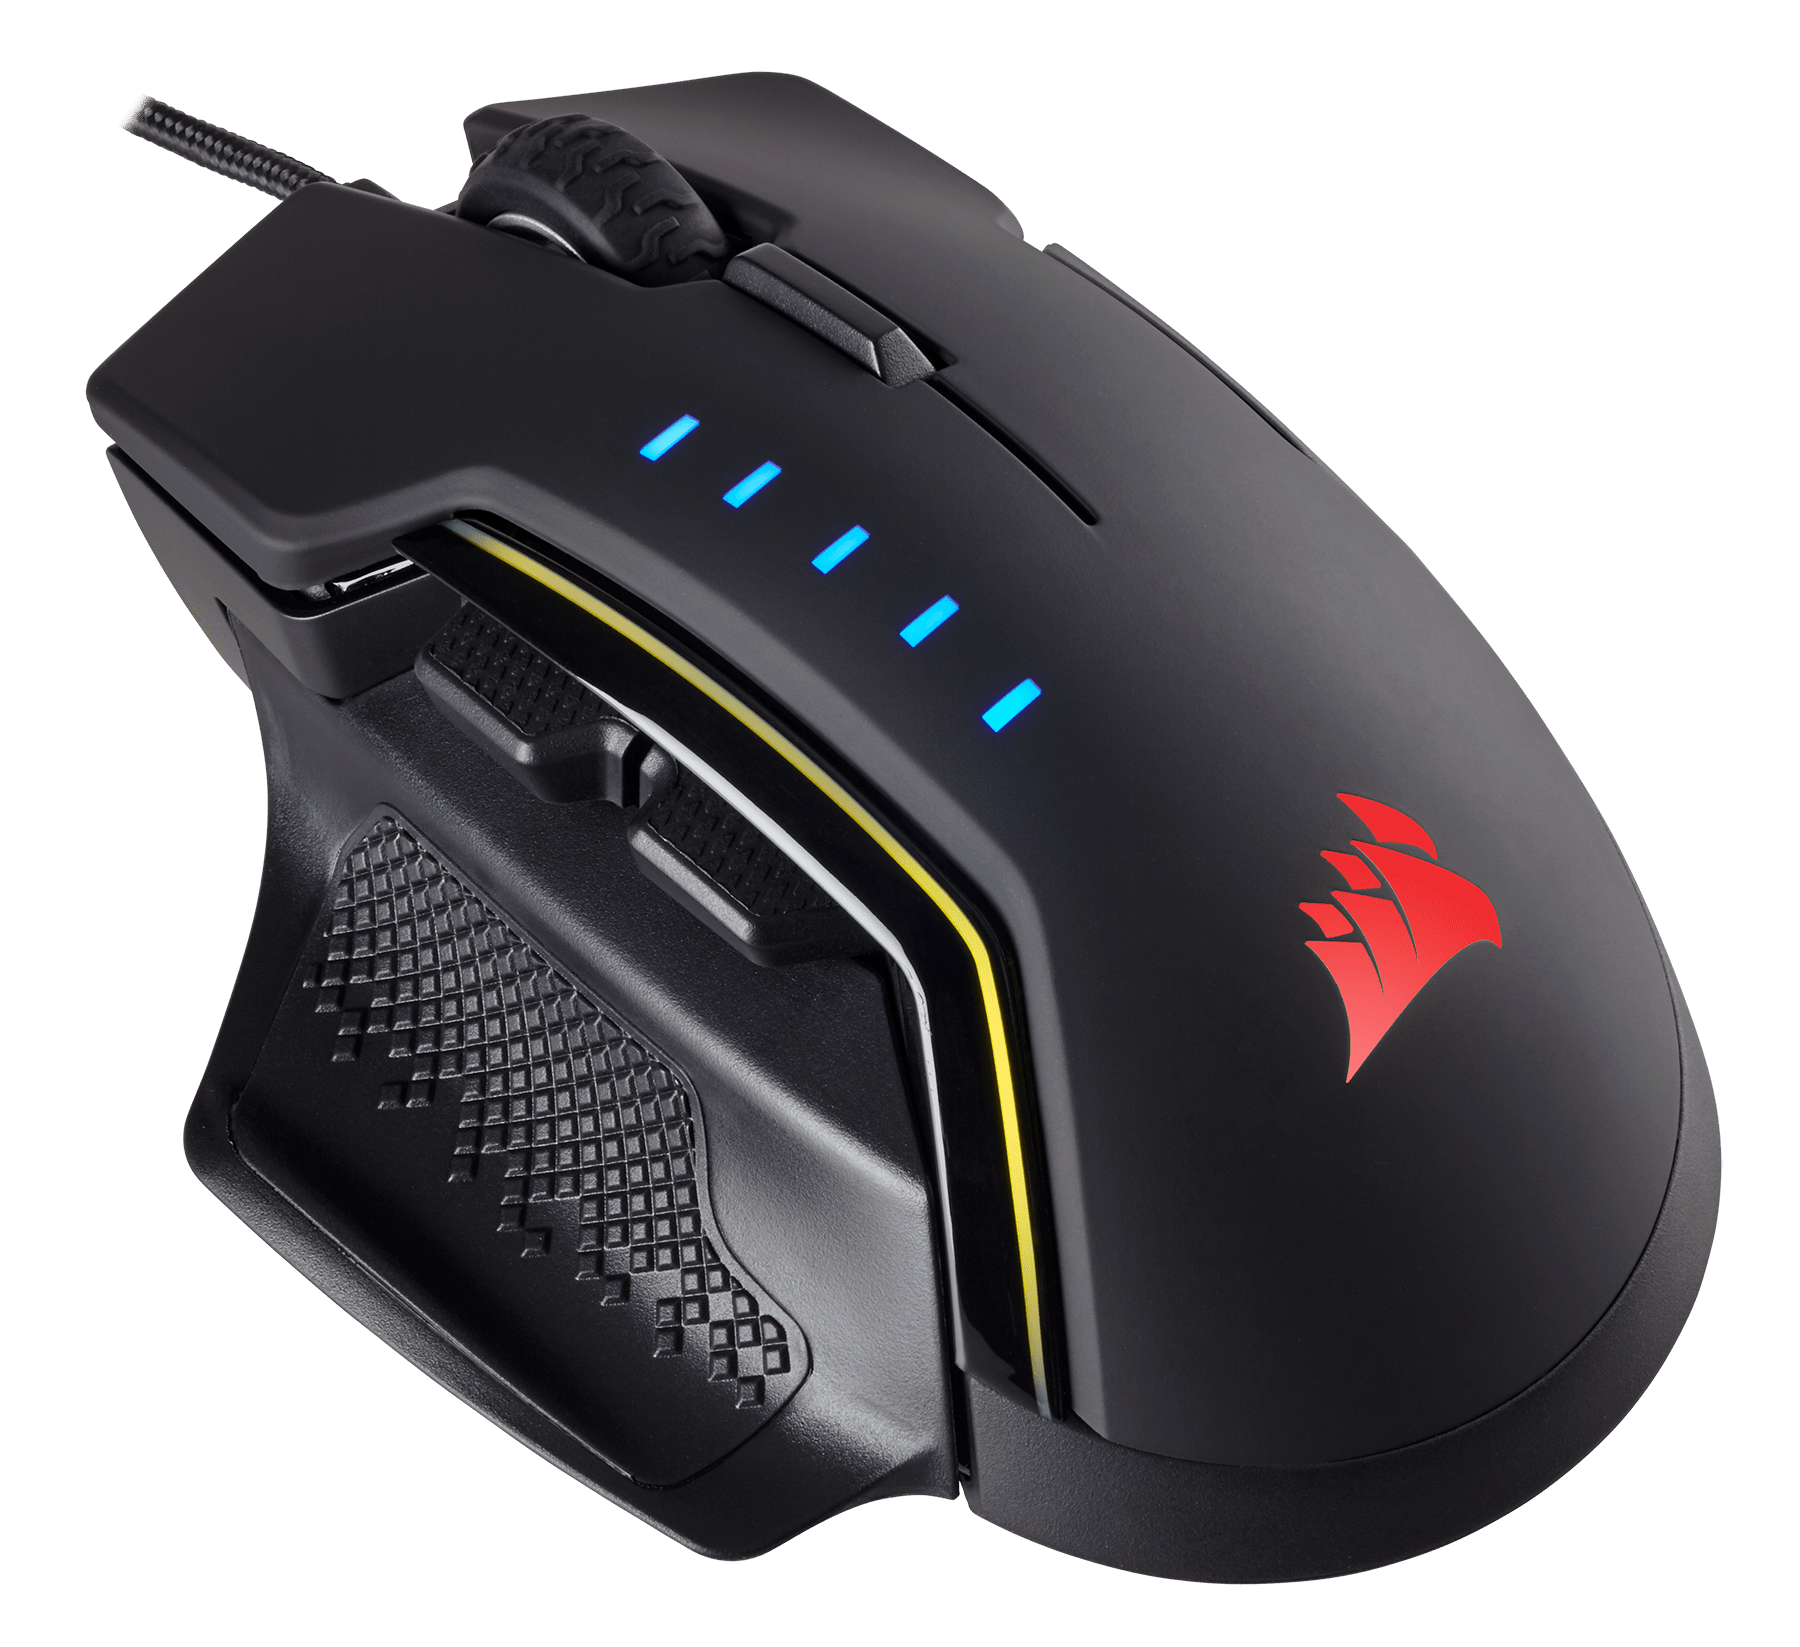 Corsair Rgb Introducing The Corsair Glaive Rgb Gaming Mouse